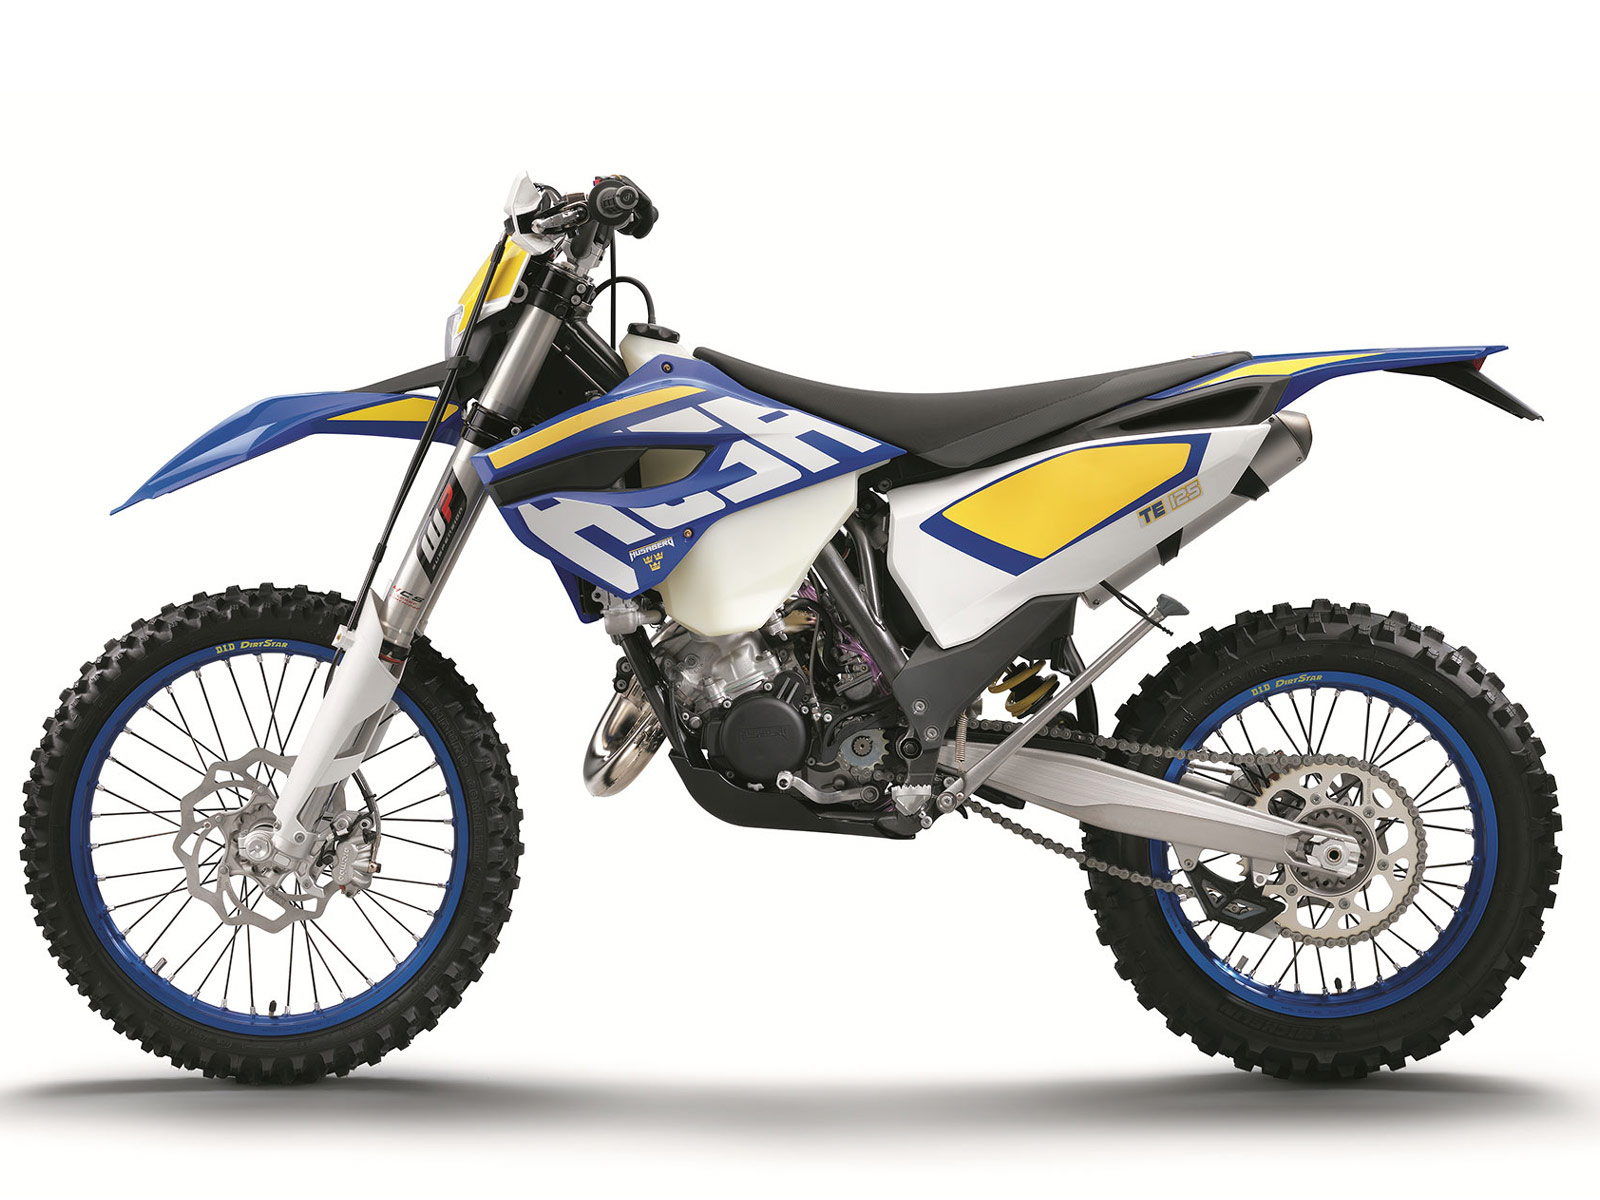 husaberg te125 2014 motorcycle pictures specifications. Black Bedroom Furniture Sets. Home Design Ideas